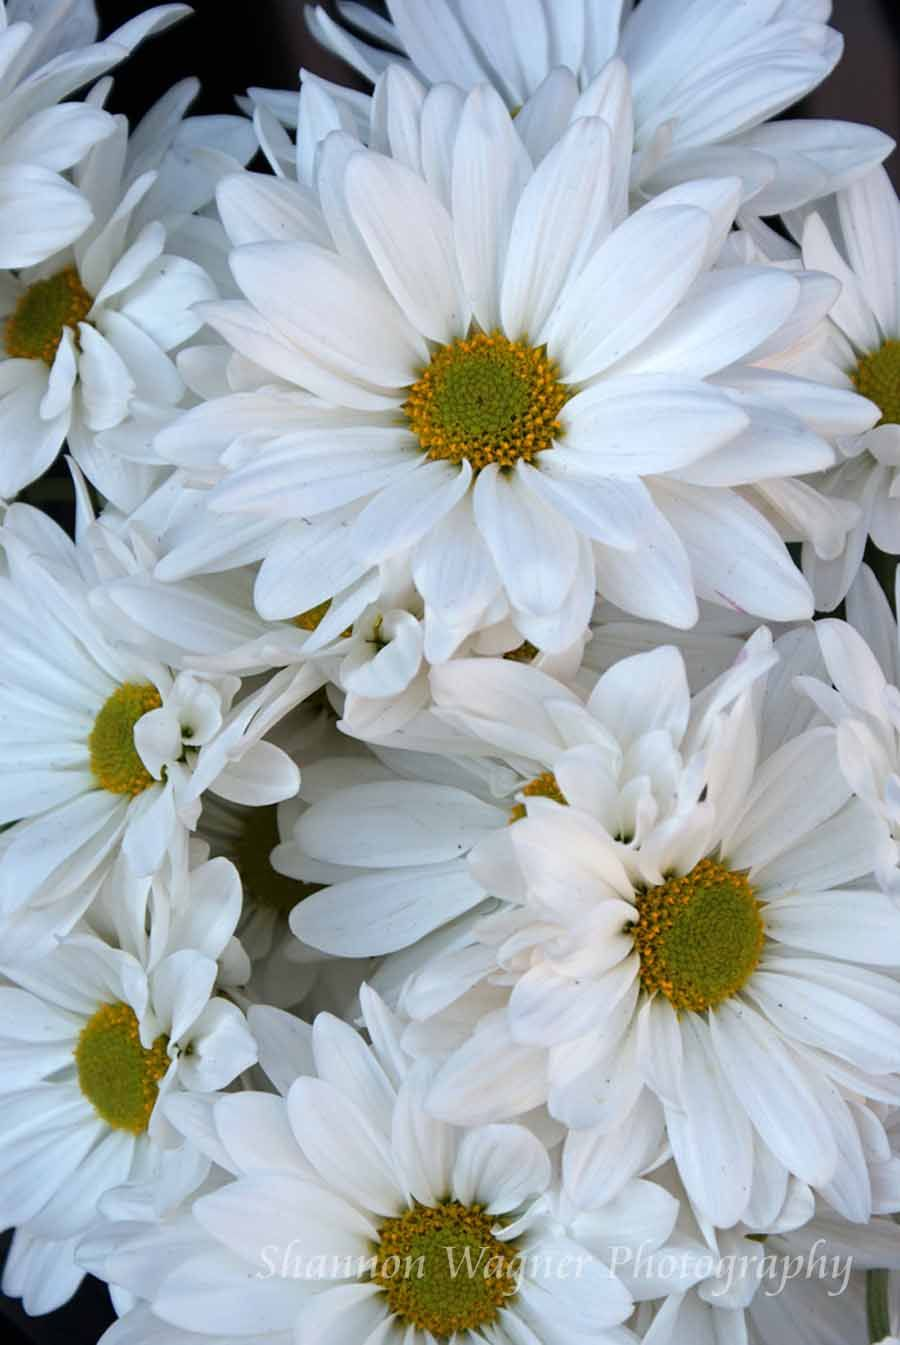 Daisies- Photograph by Shannon Wagner